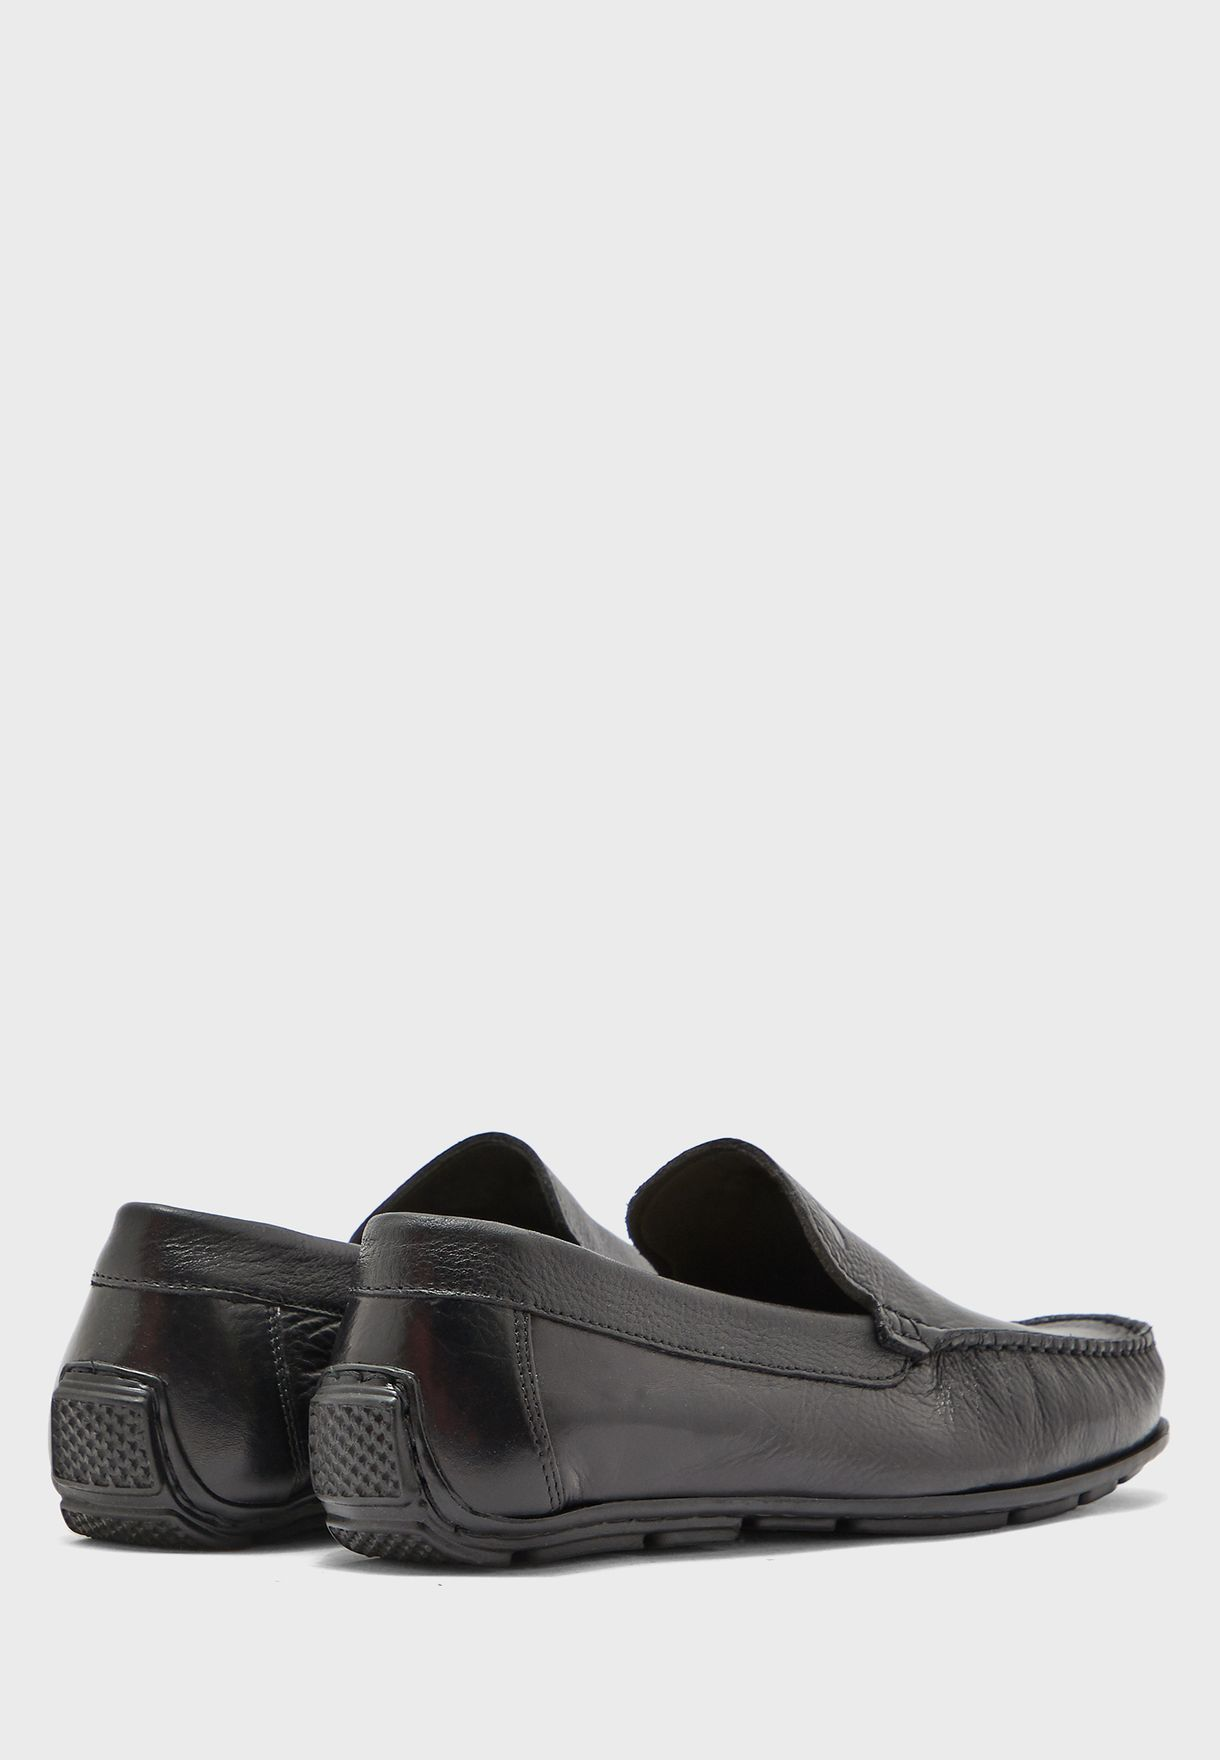 Driving Casual Slip On